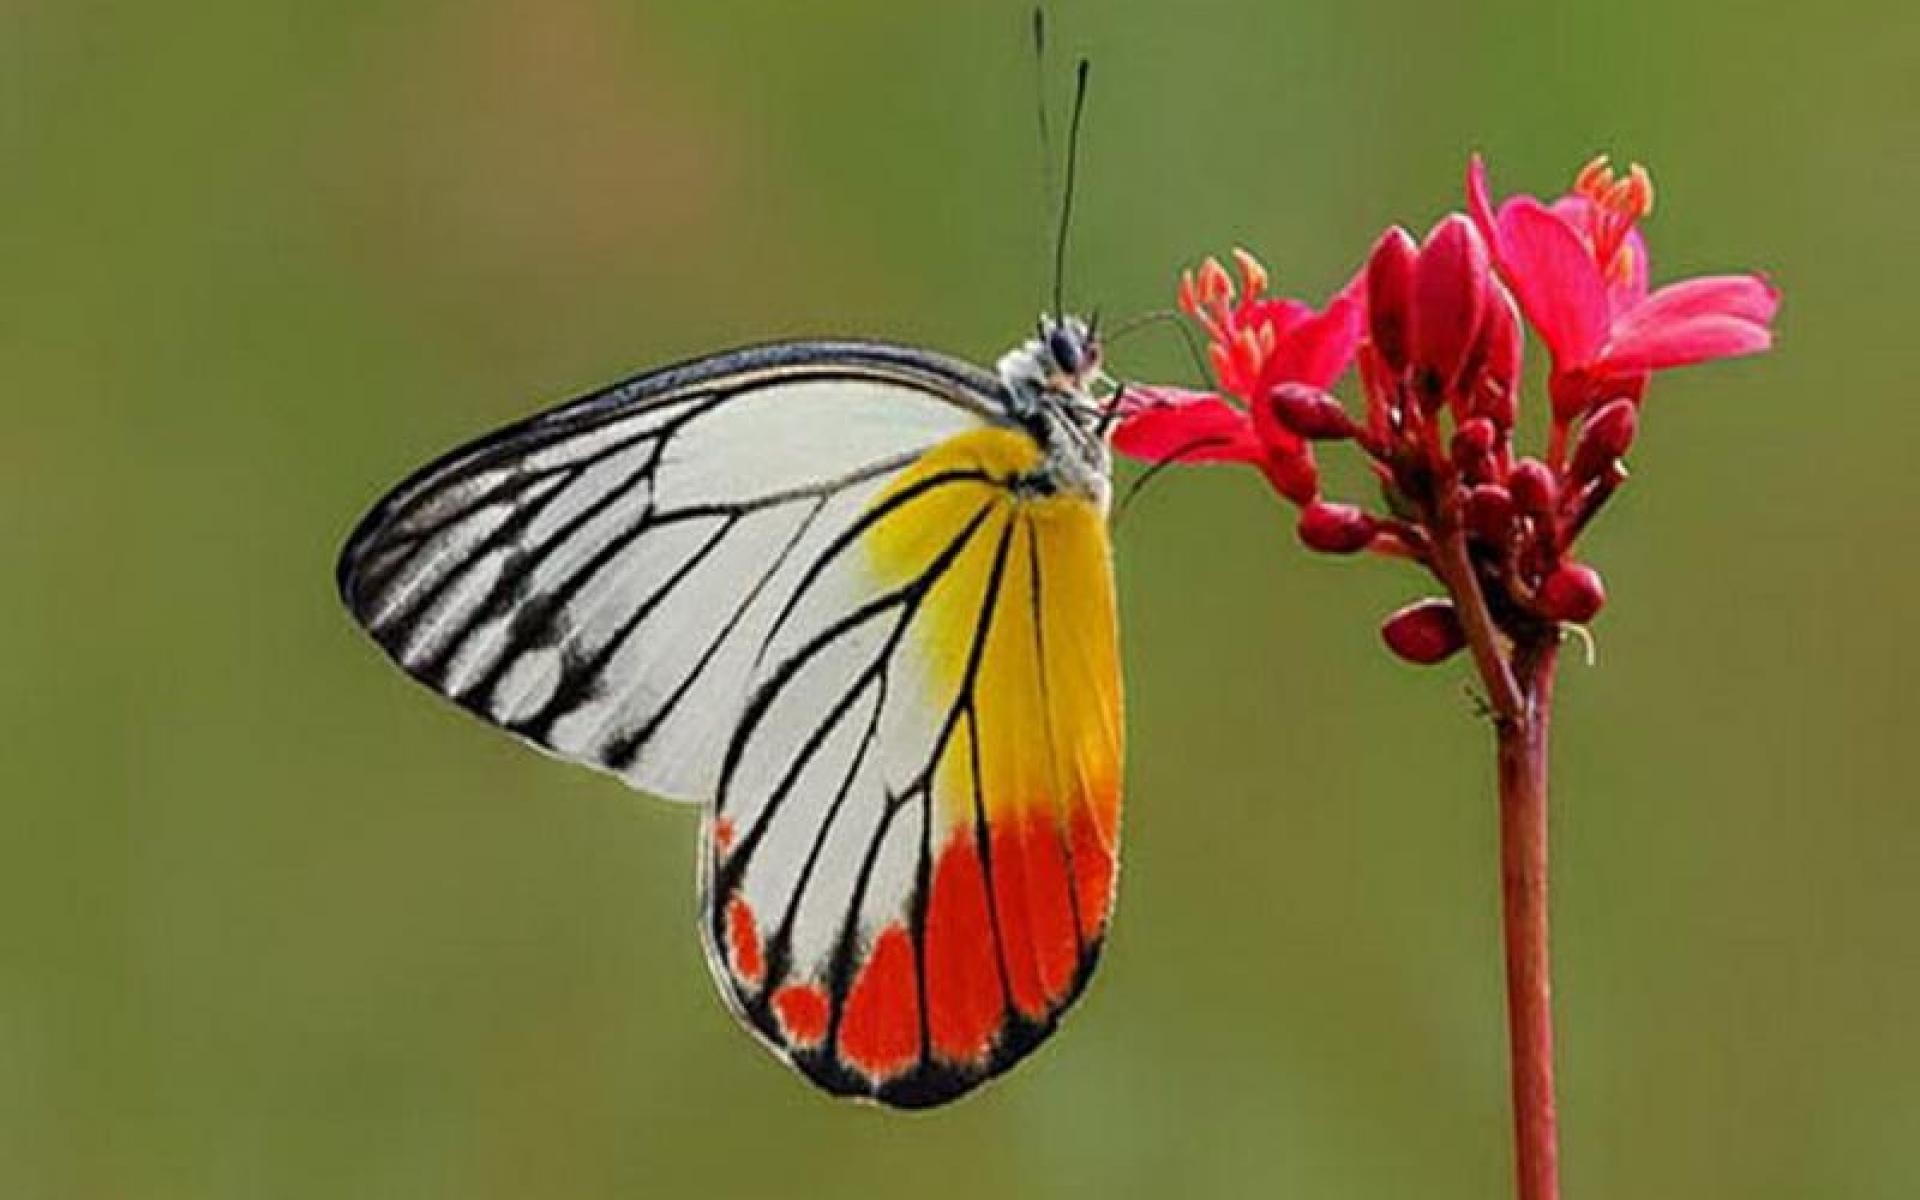 Butterfly - photo#37